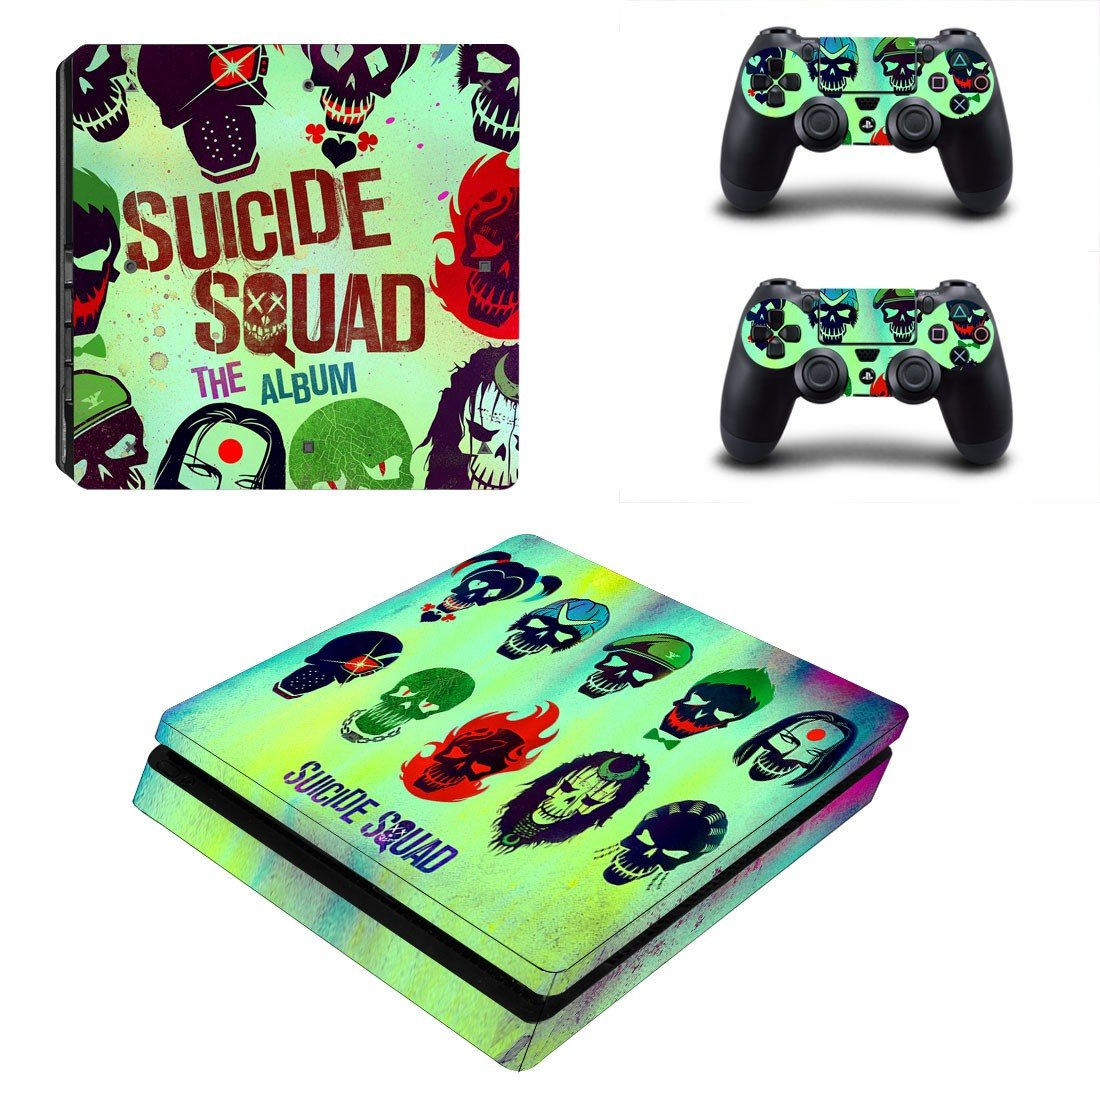 Suicide squad ps4 slim skin decal for console and controllers